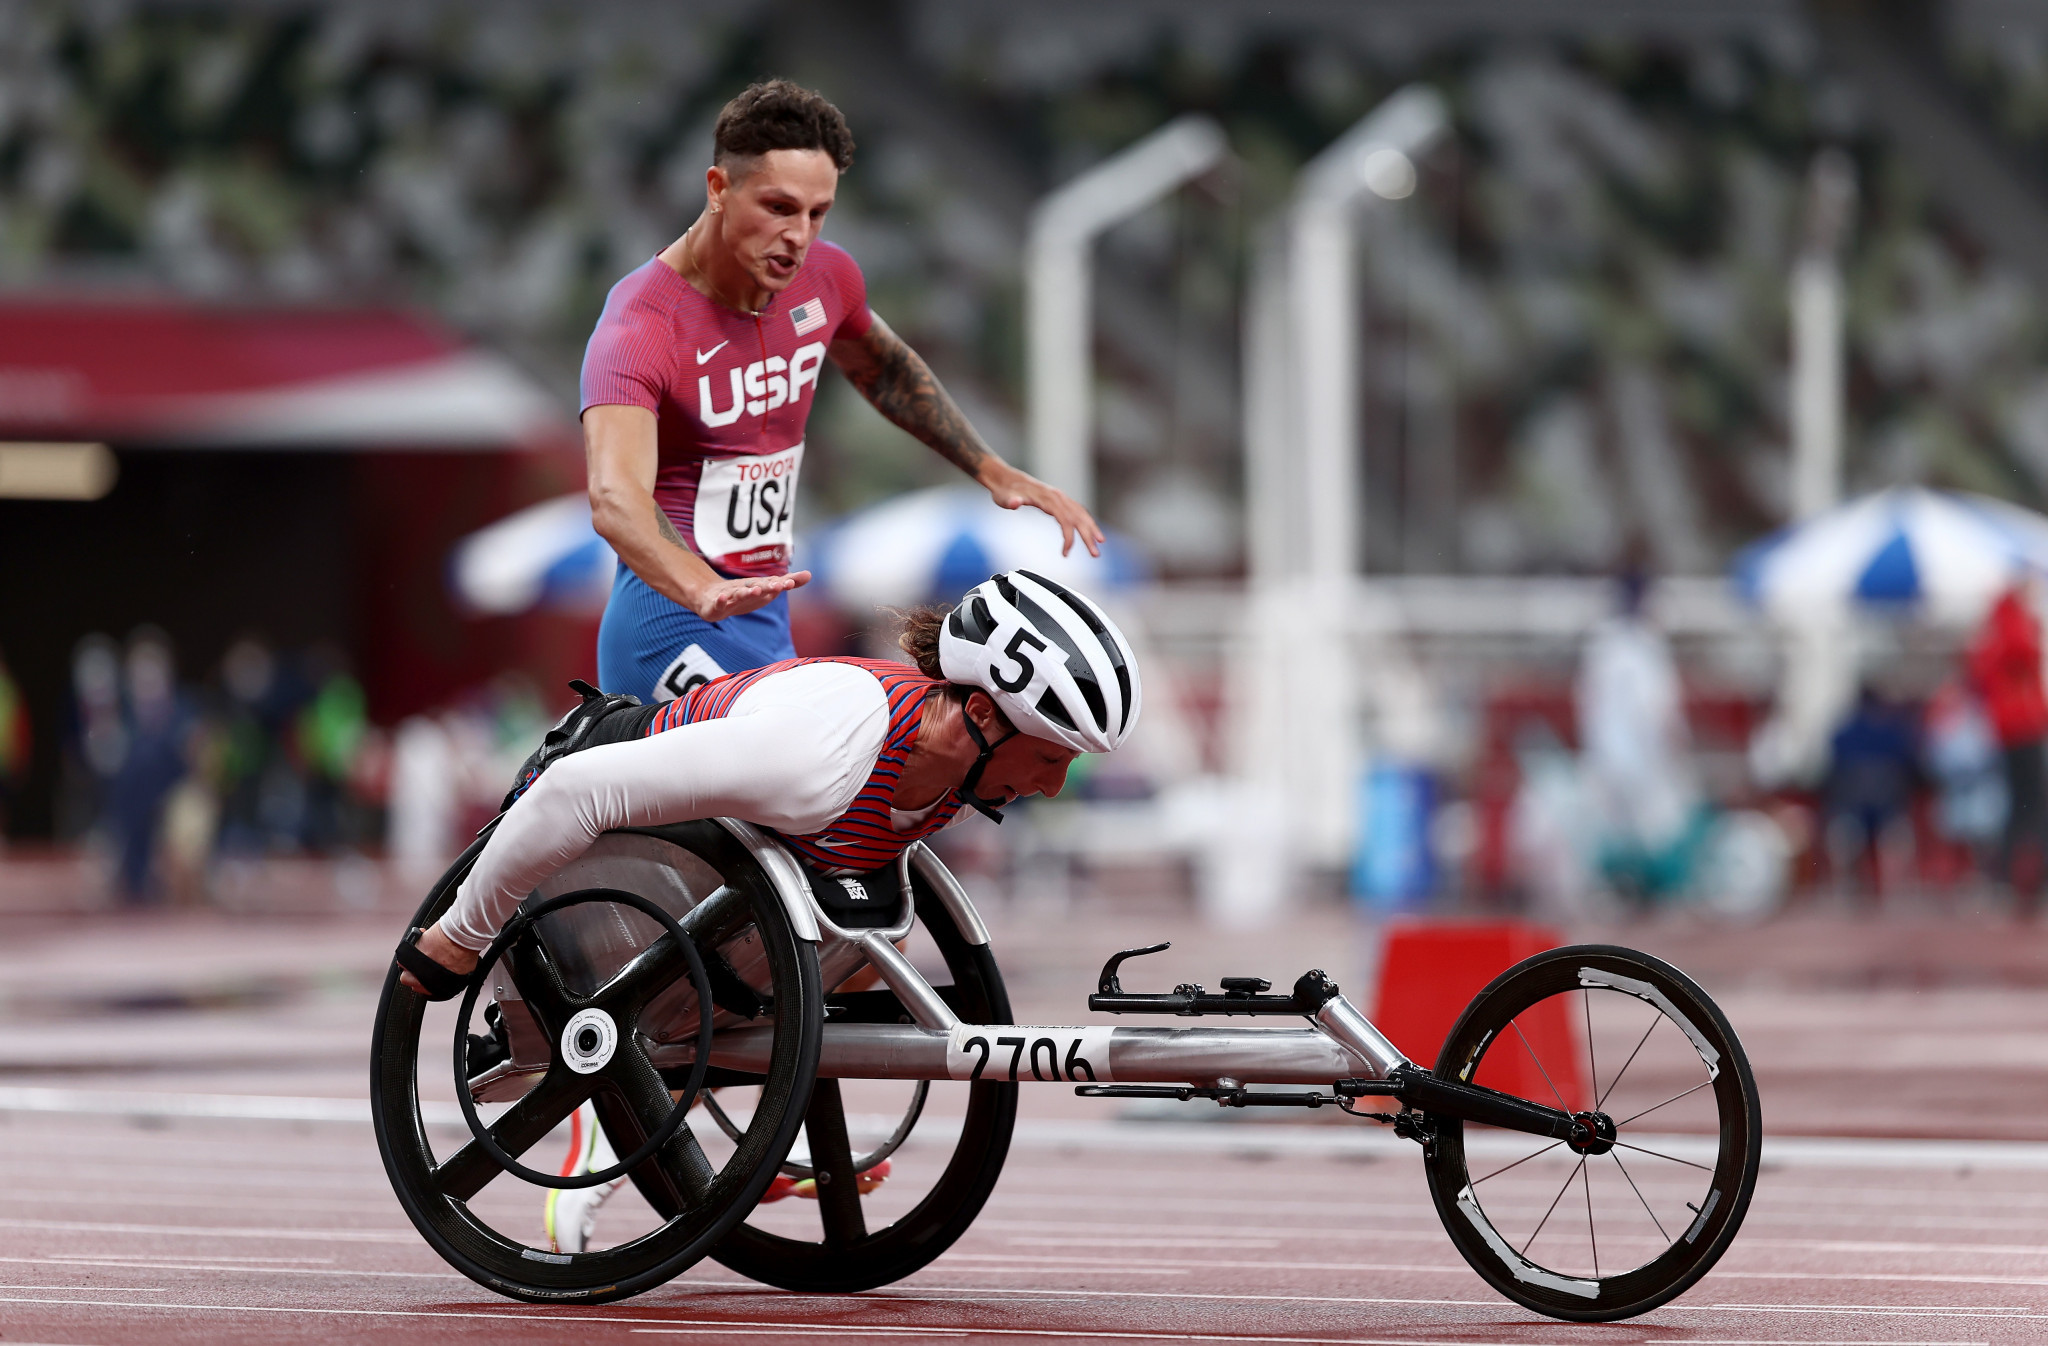 Nick Mayhugh delivered the baton to wheelchair racer Tatyana McFadden in the Americans' final exchange ©Getty Images